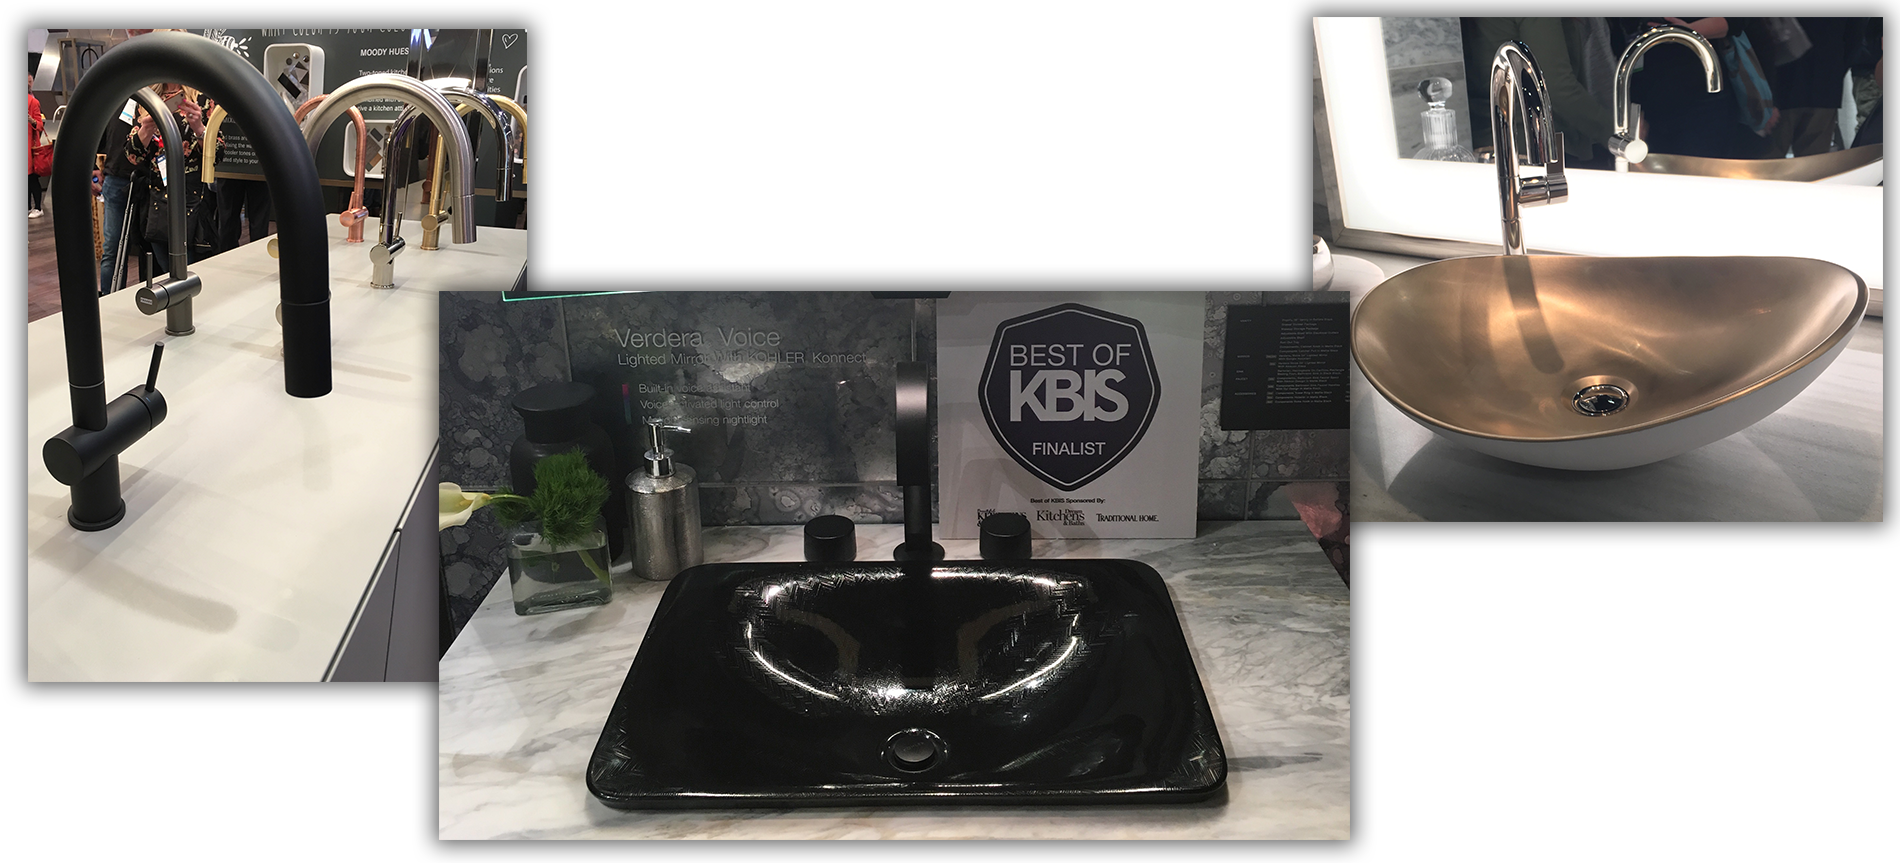 kbis-faucet-collage